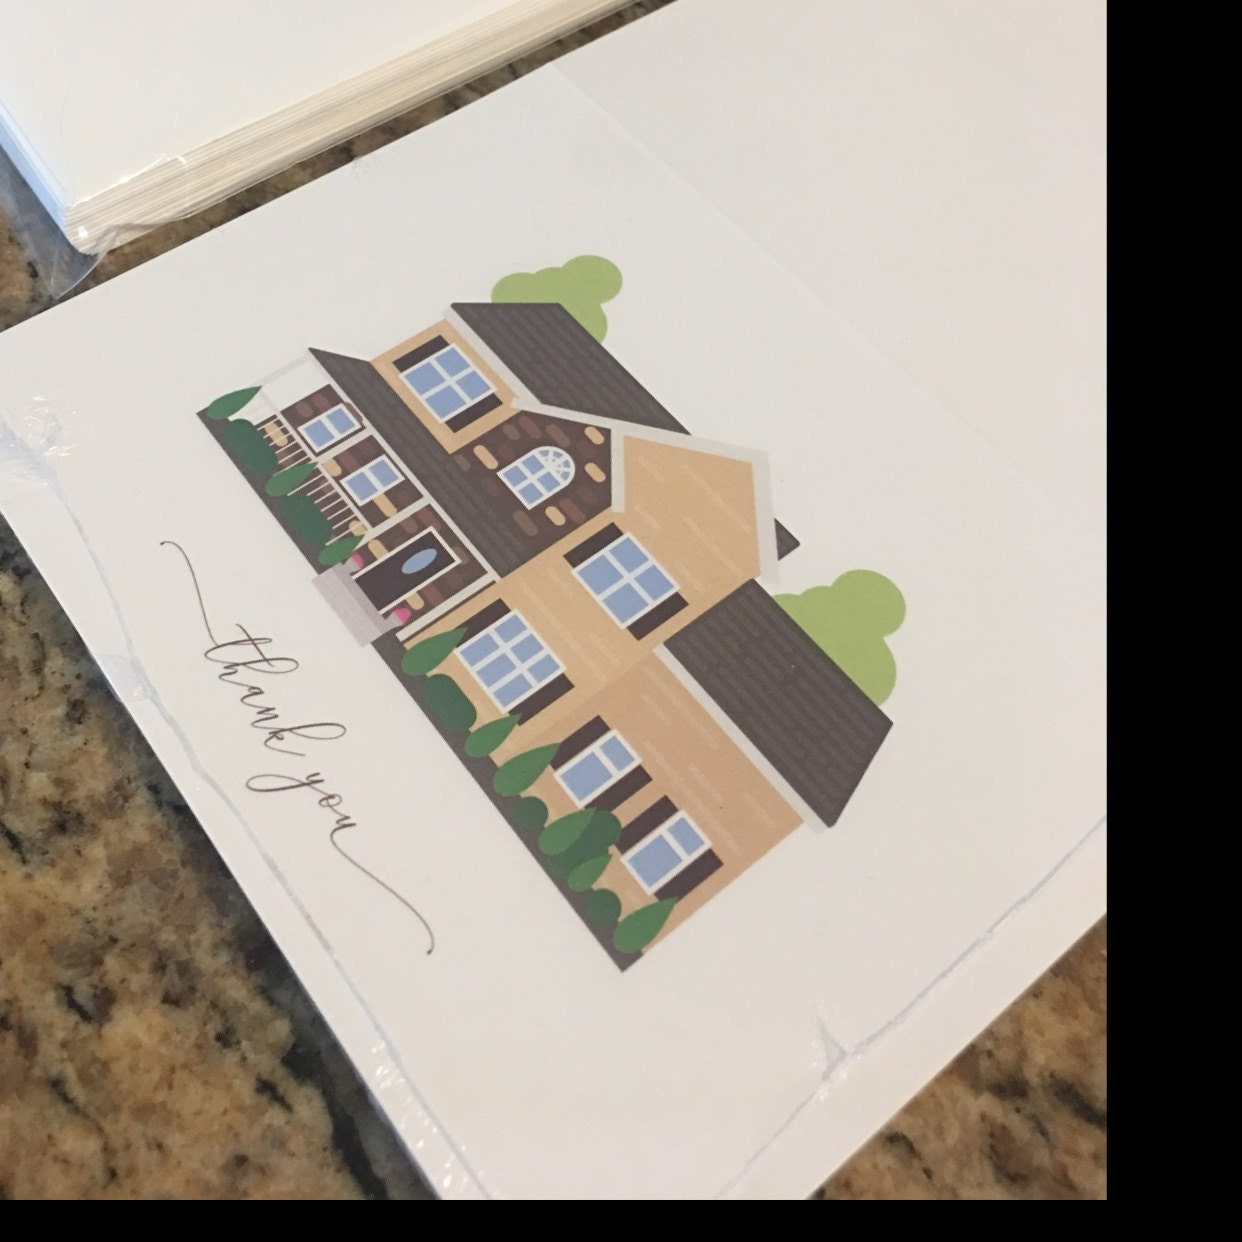 Melissa Parmenter added a photo of their purchase